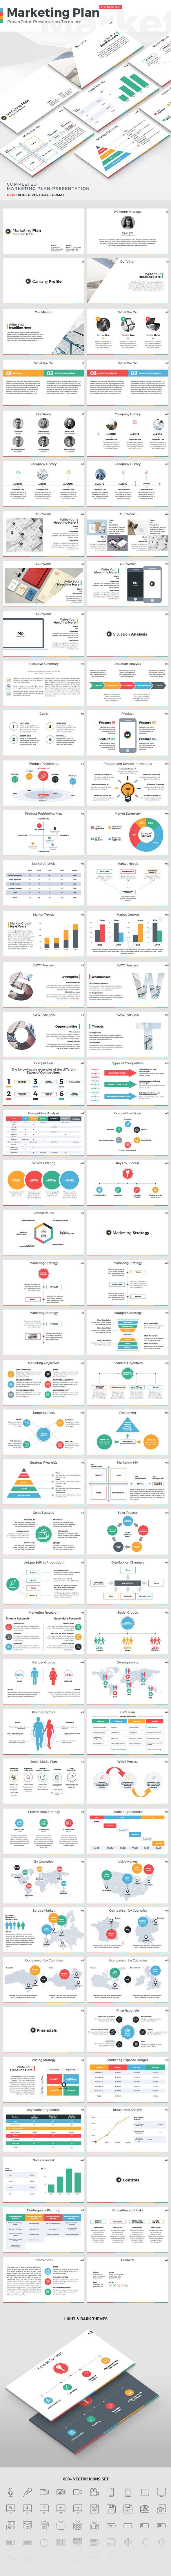 Marketing Plan - PowerPoint Presentation Template - PowerPoint Templates Presentation Templates